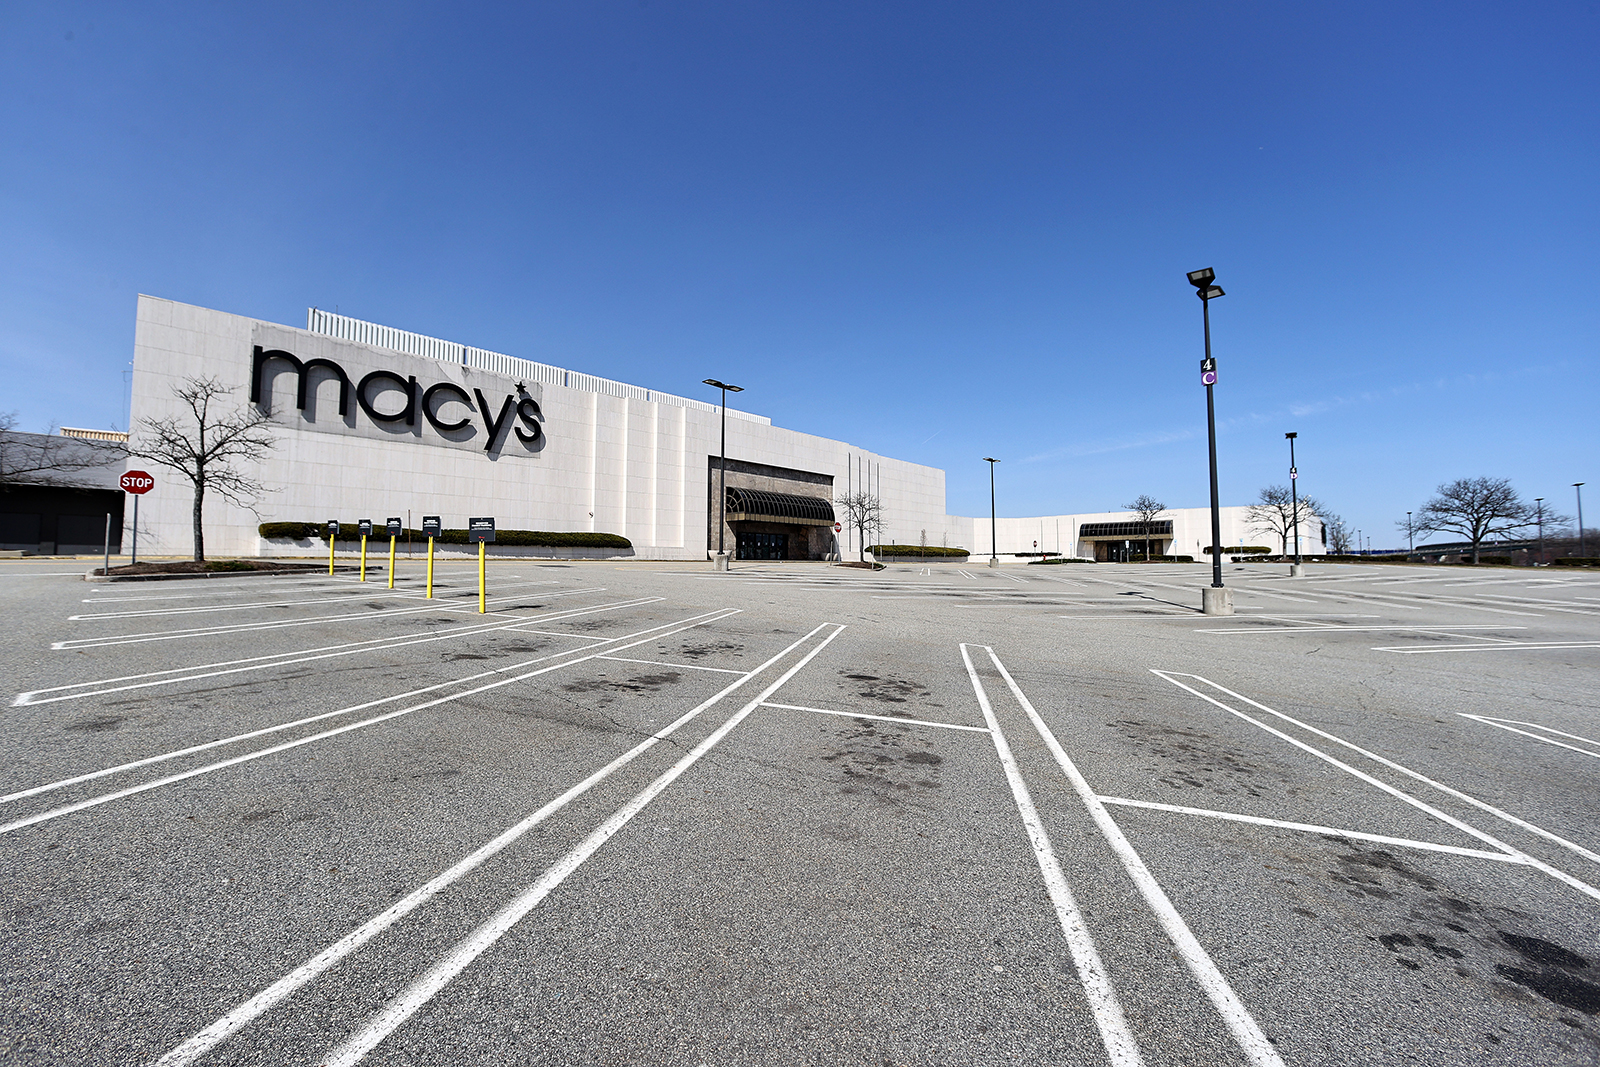 A view of the empty parking lot at the Westfield Garden State Plaza in Paramus, New Jersey, on March 18.